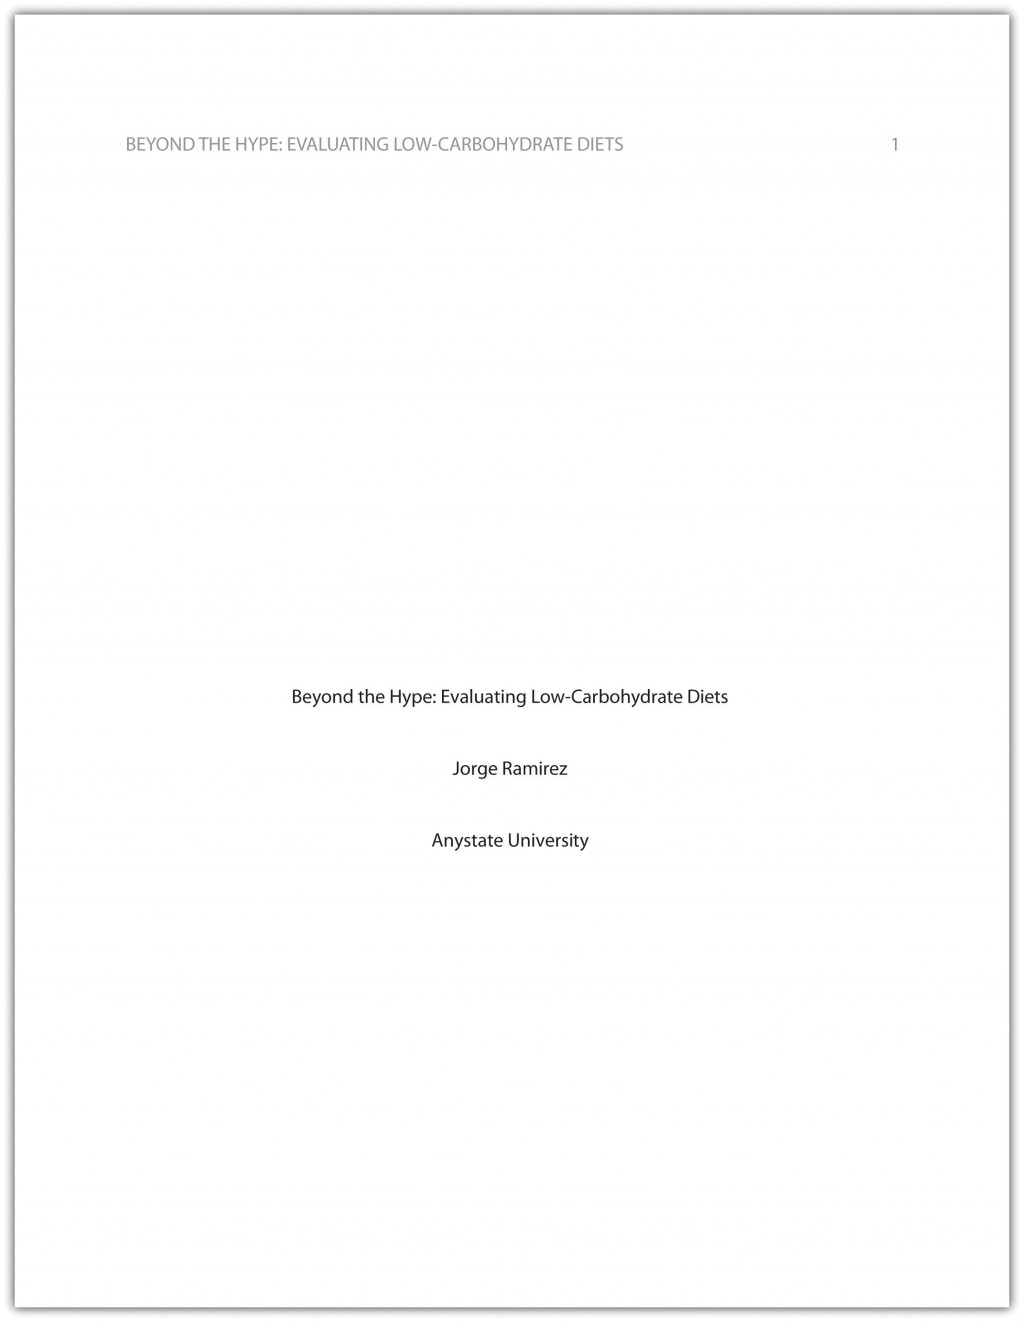 002 Research Paper Cover Page Apa Excellent Template Layout Format Sample Title Large